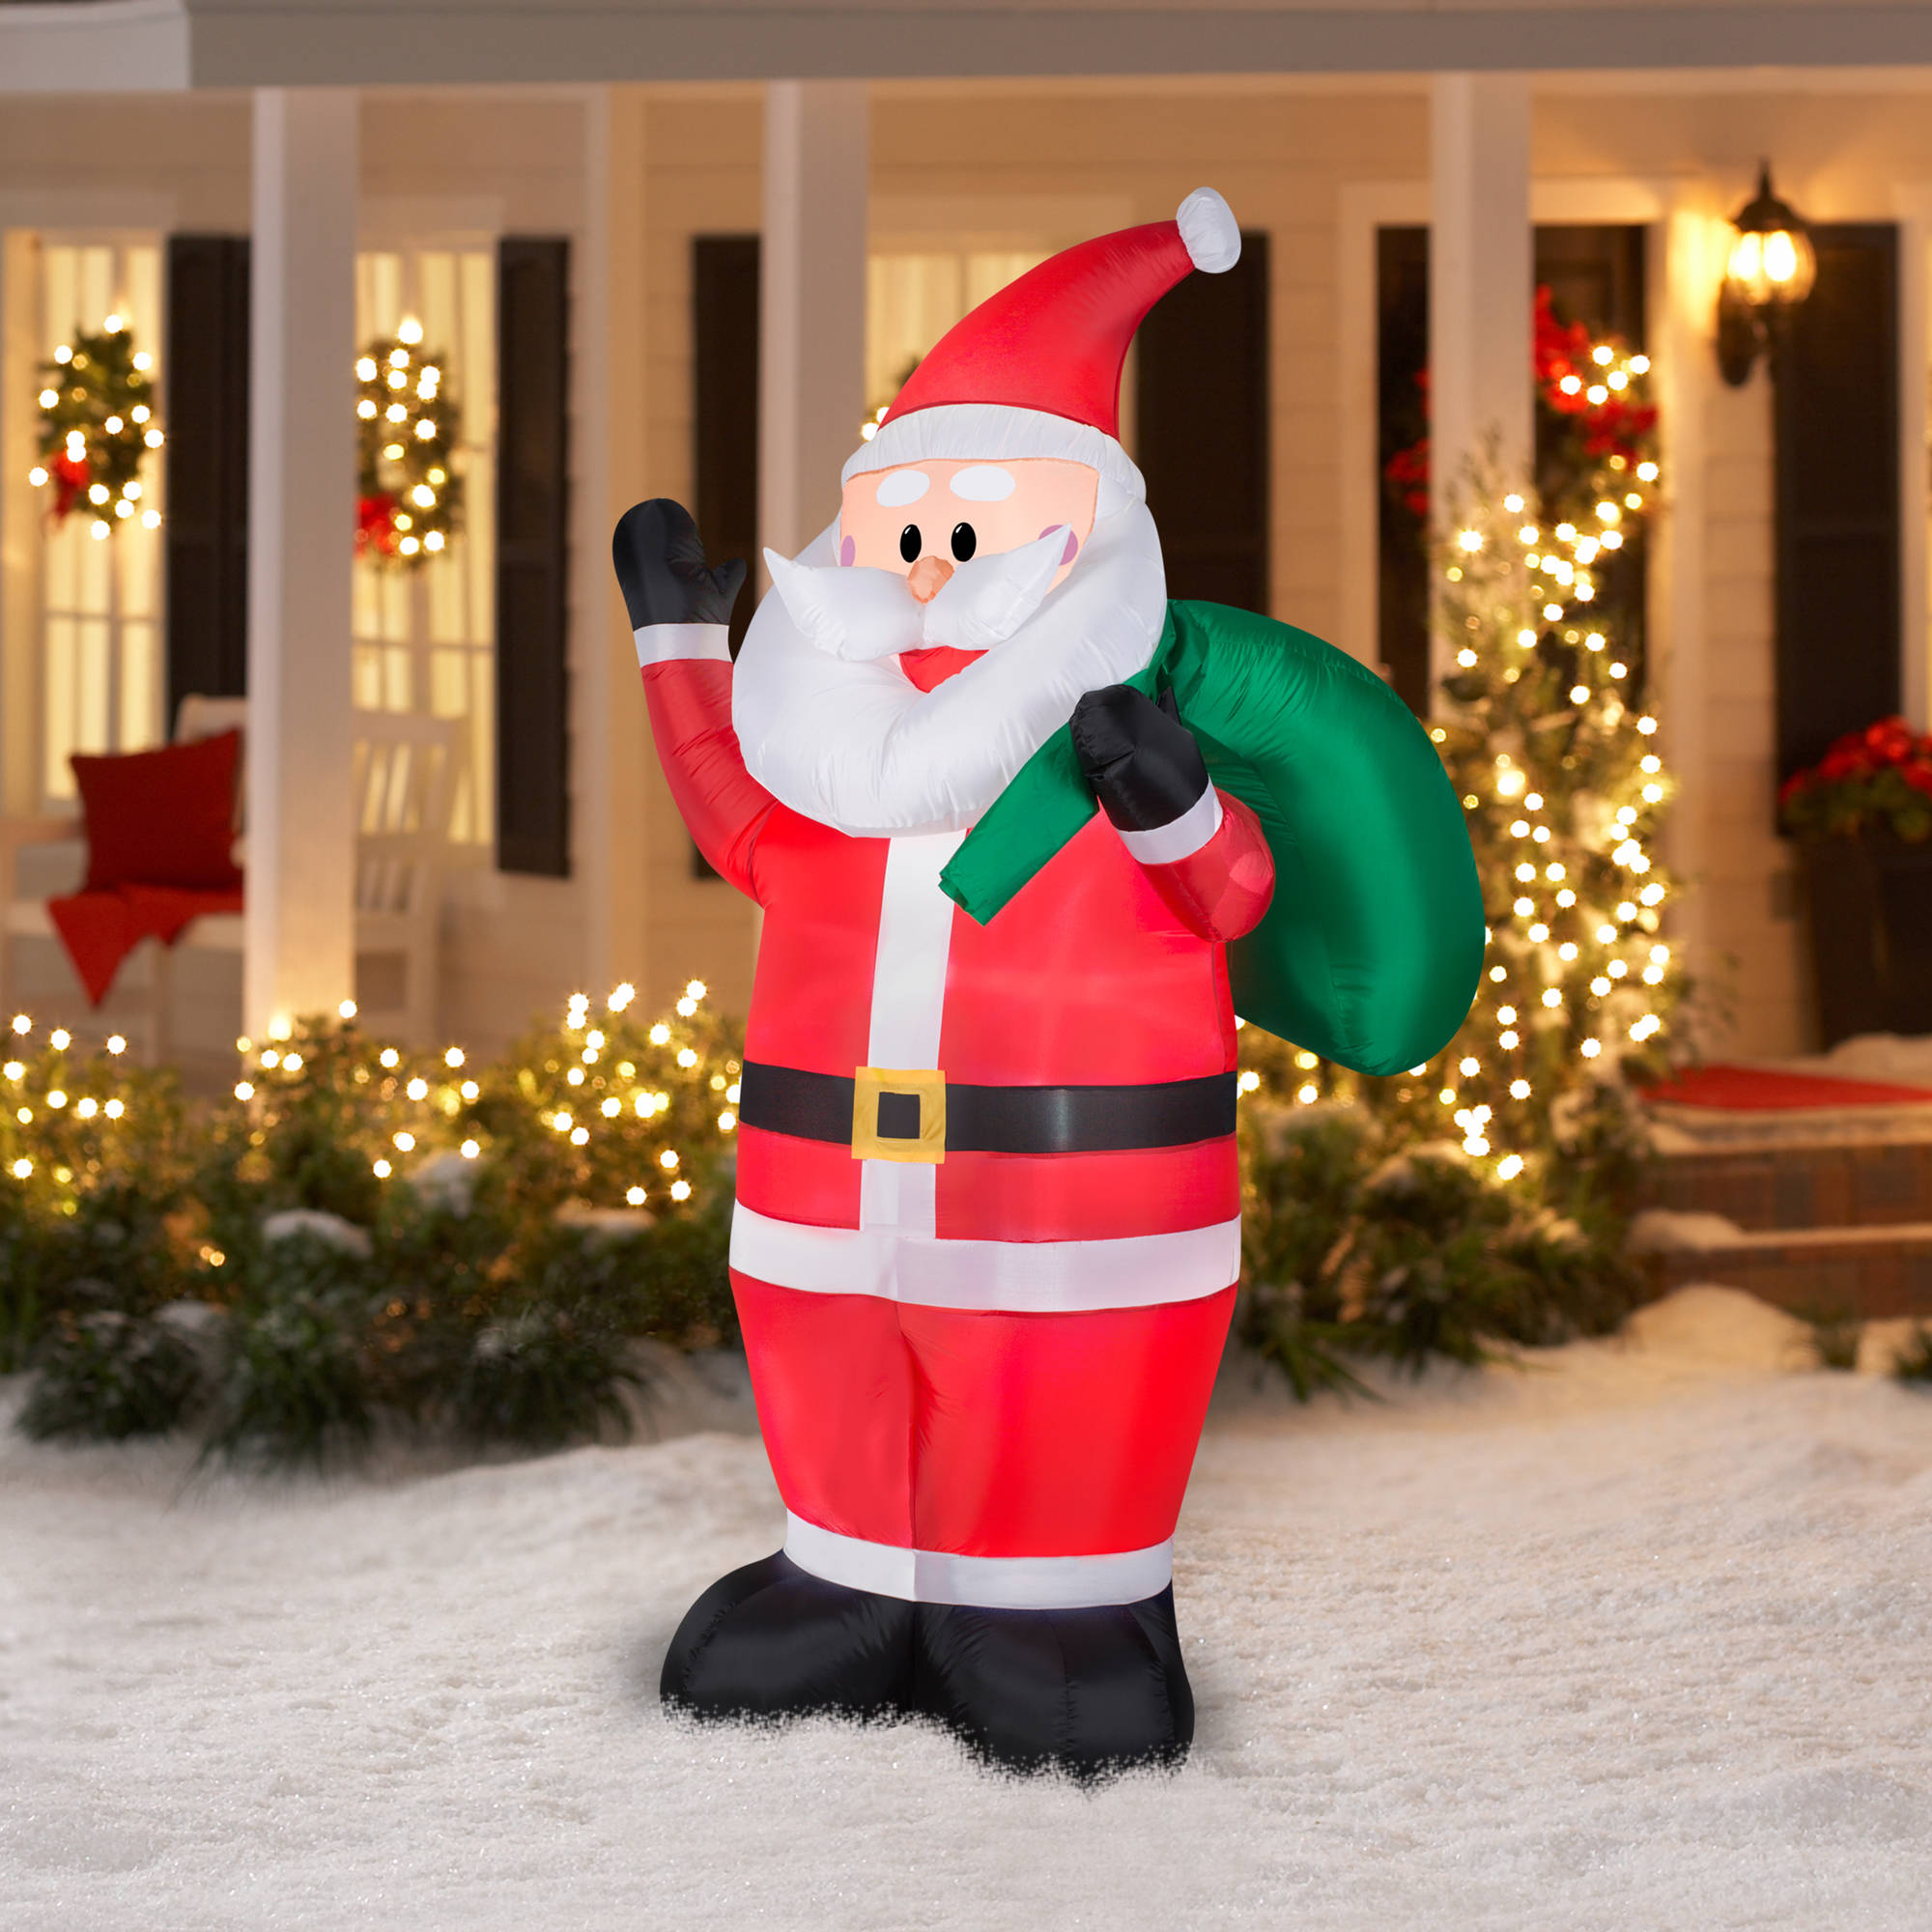 gemmy airblown christmas inflatables 7 waving santa walmartcom - Outdoor Christmas Inflatables